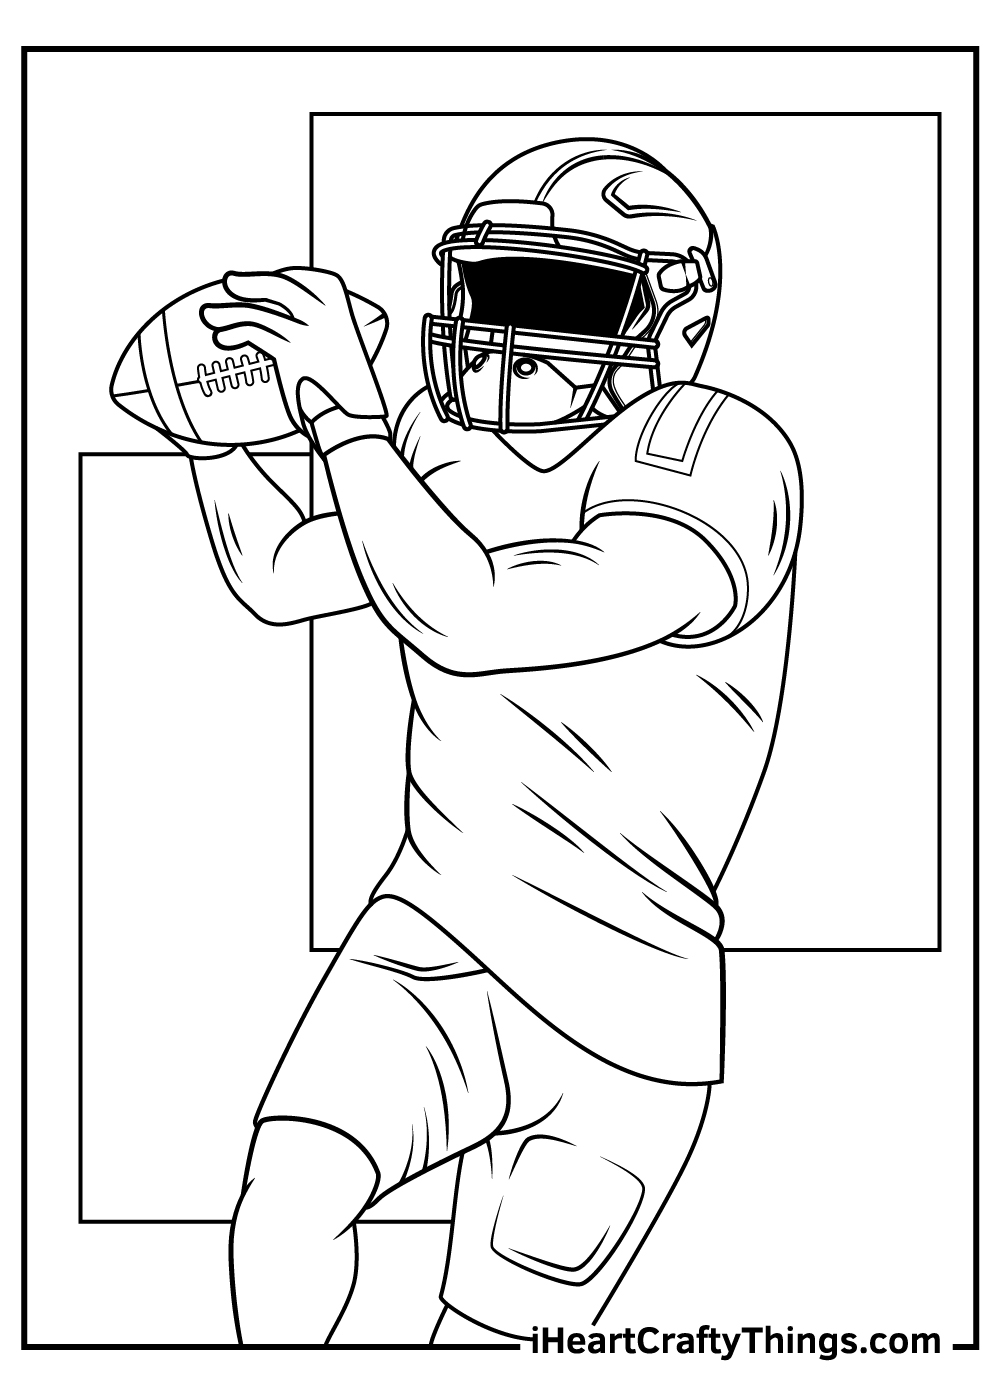 NFL coloring pages black and white printable pdf